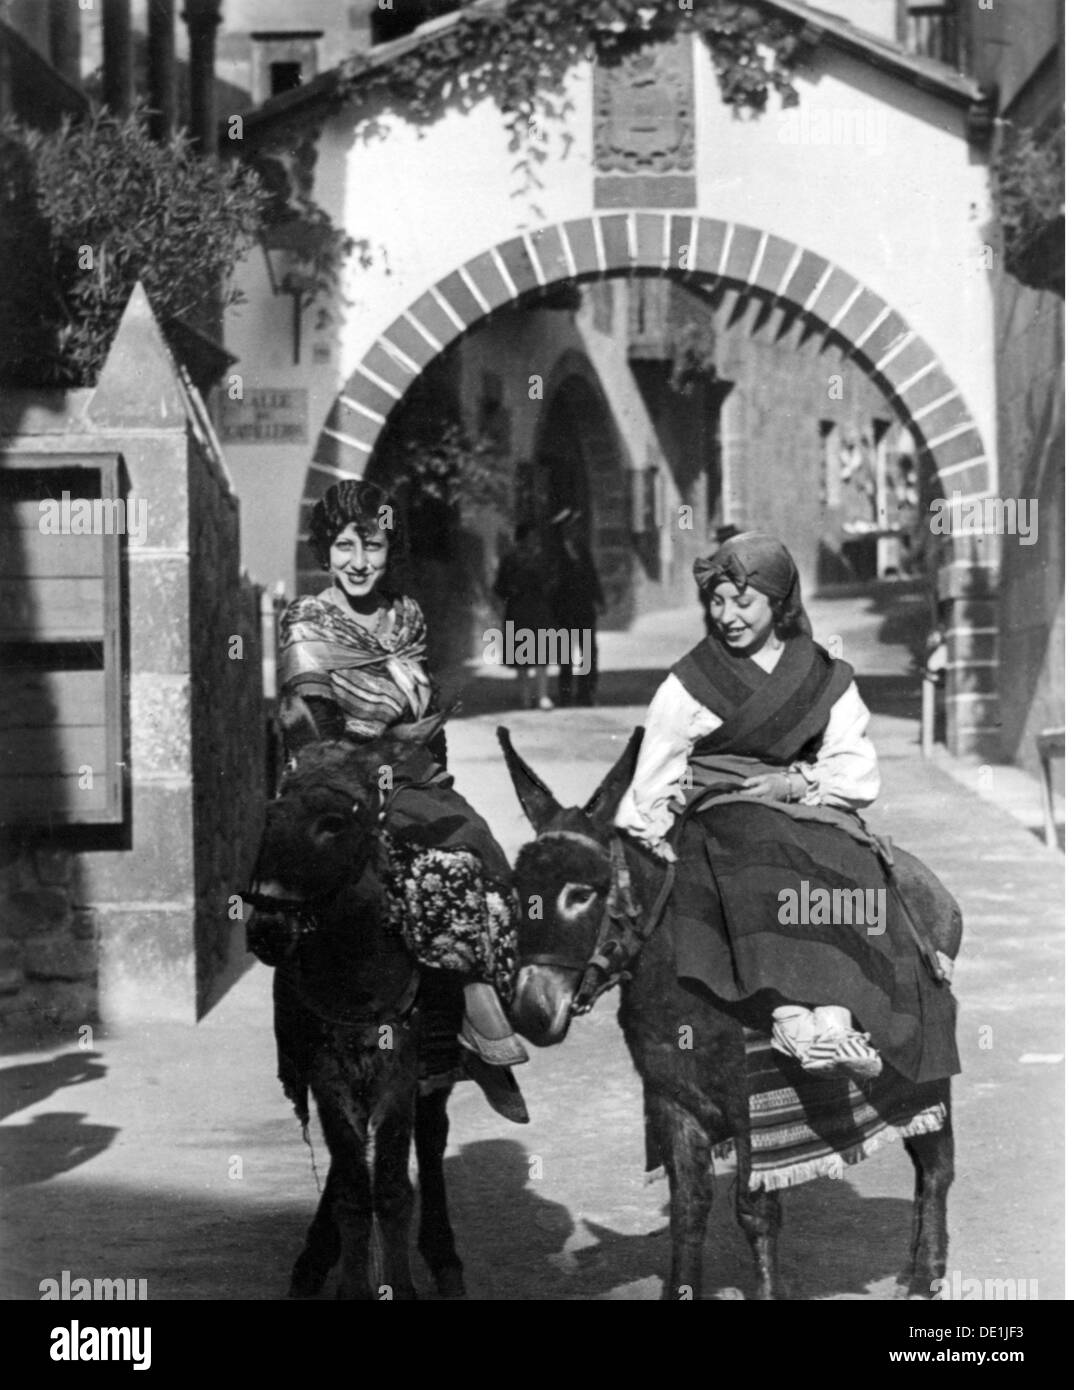 geography / travel, Spain, Barcelona, people, two women in Catalonian traditional costume riding on donkeys, 19.5.1936, Additional-Rights-Clearences-NA - Stock Image